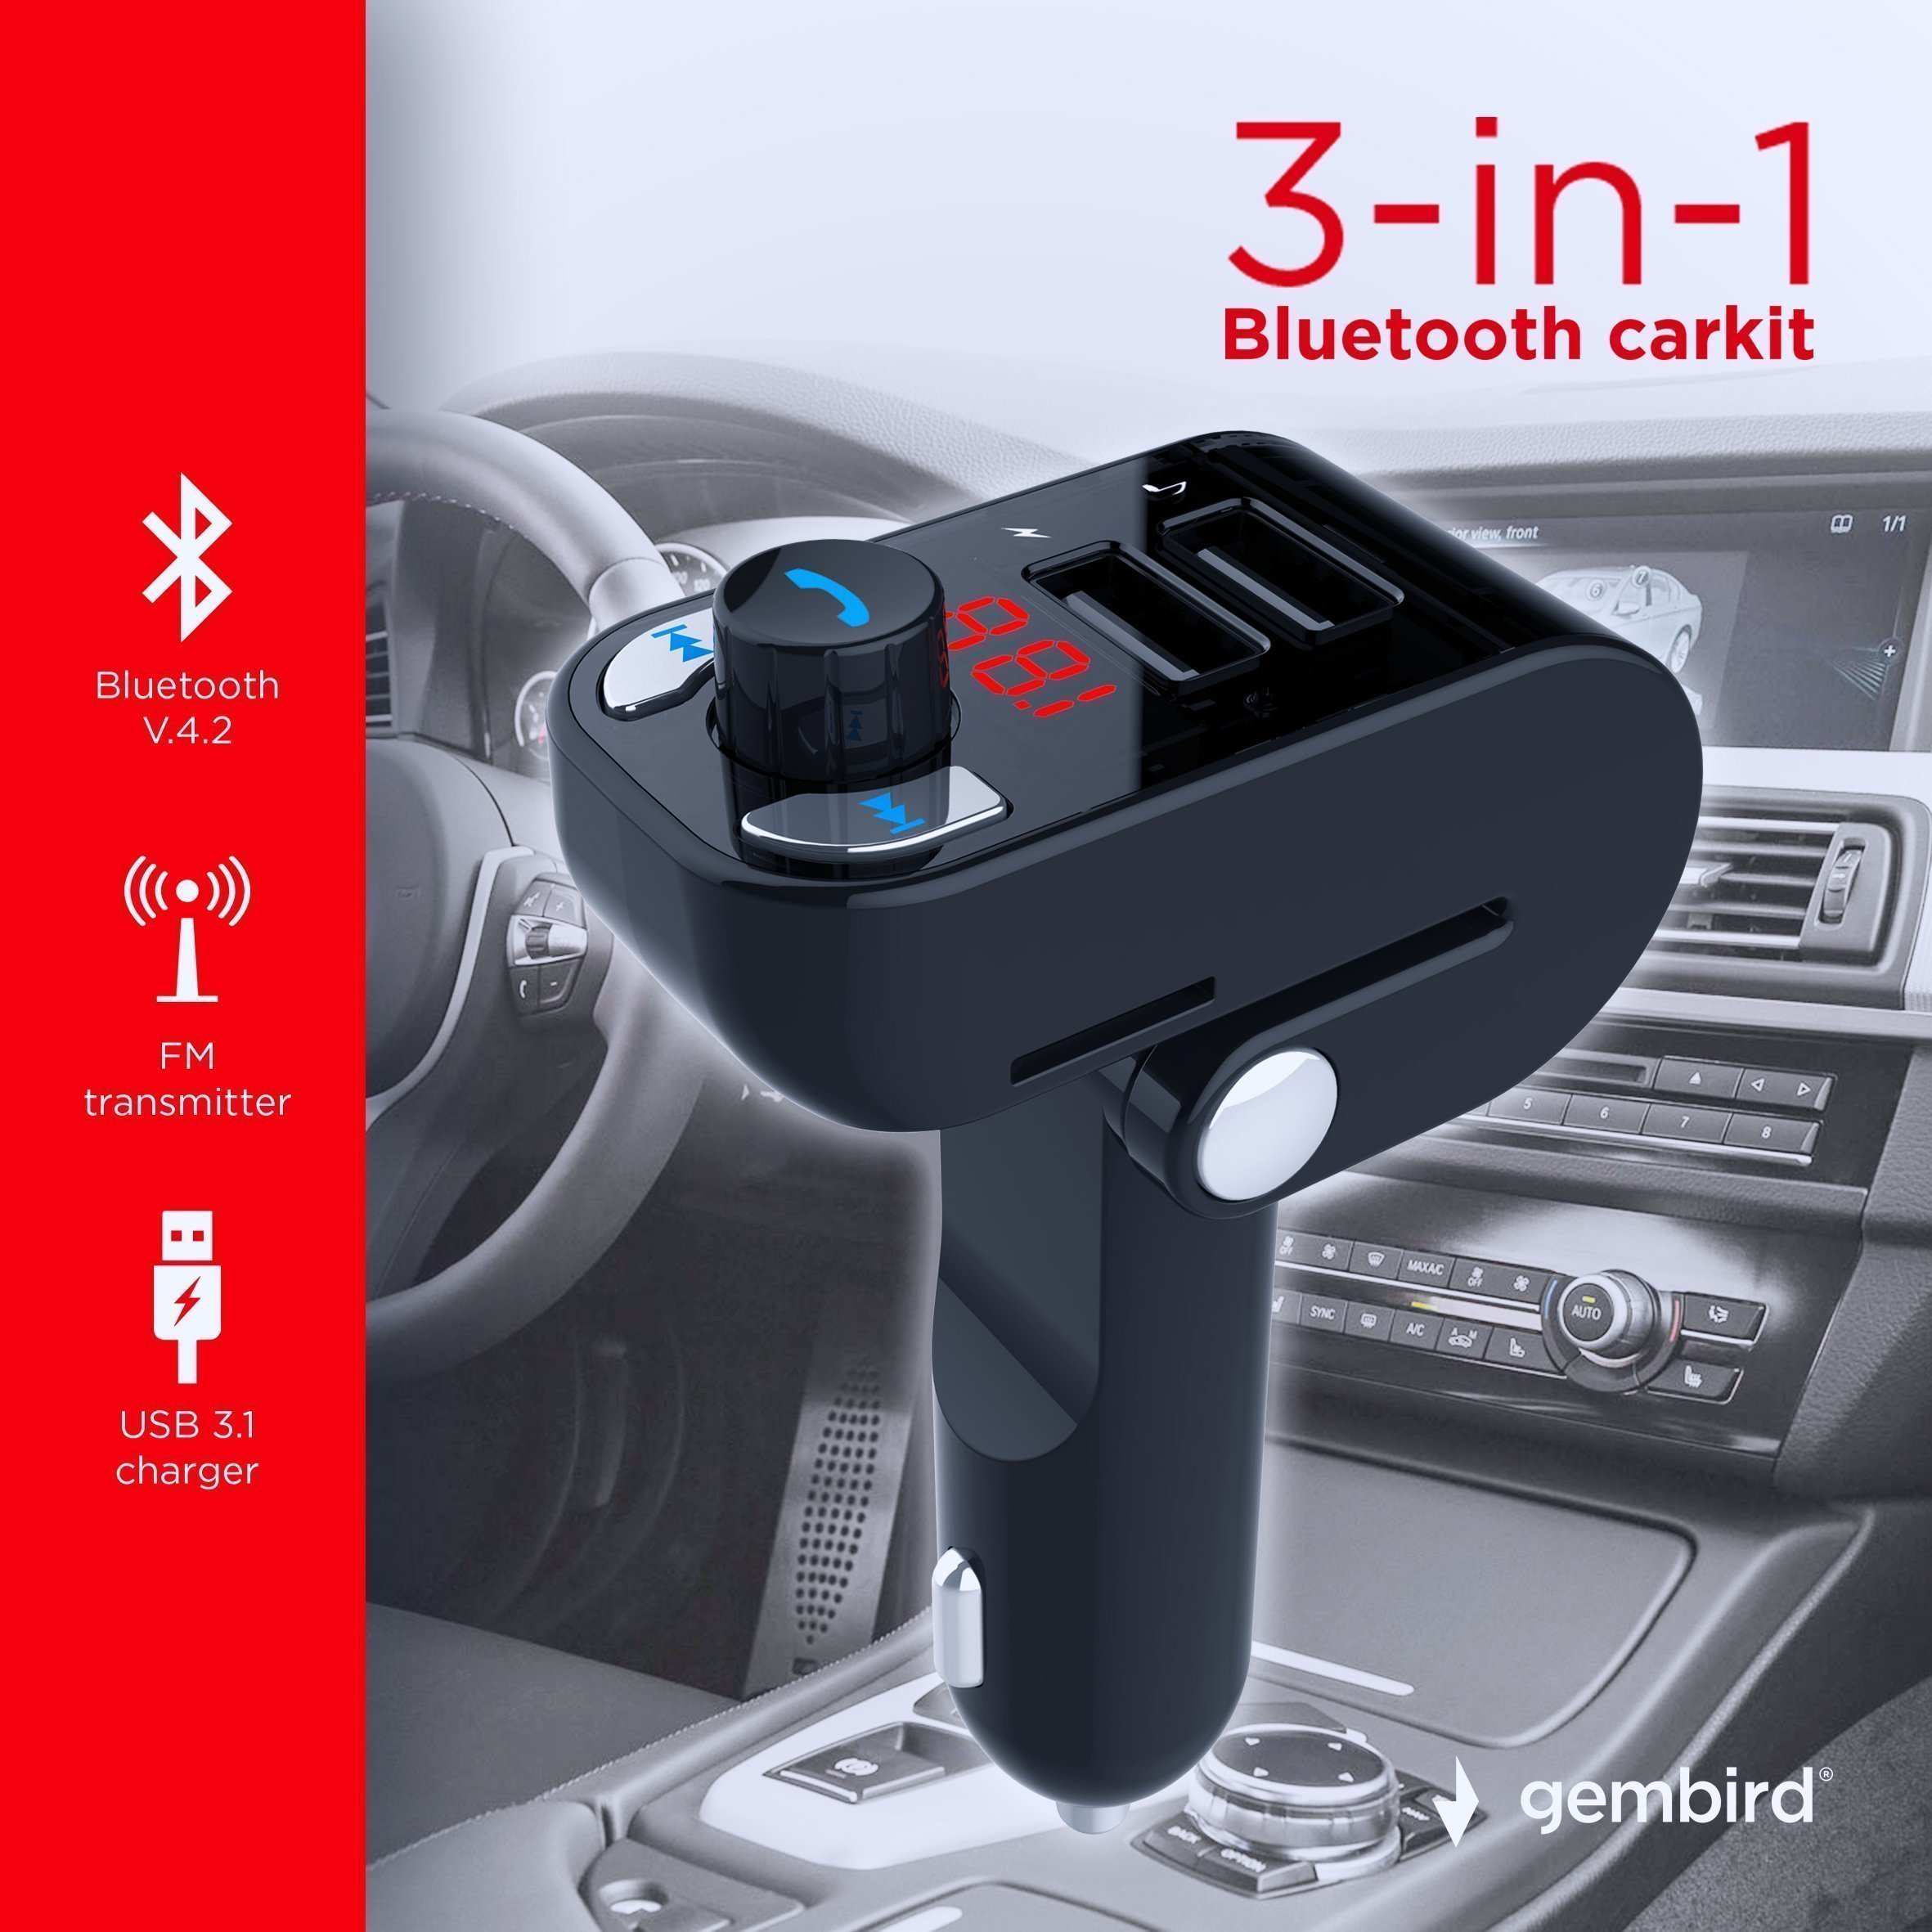 3-in-1 Bluetooth carkit with FM-radio transmitter and USB 3.1 A charger, black